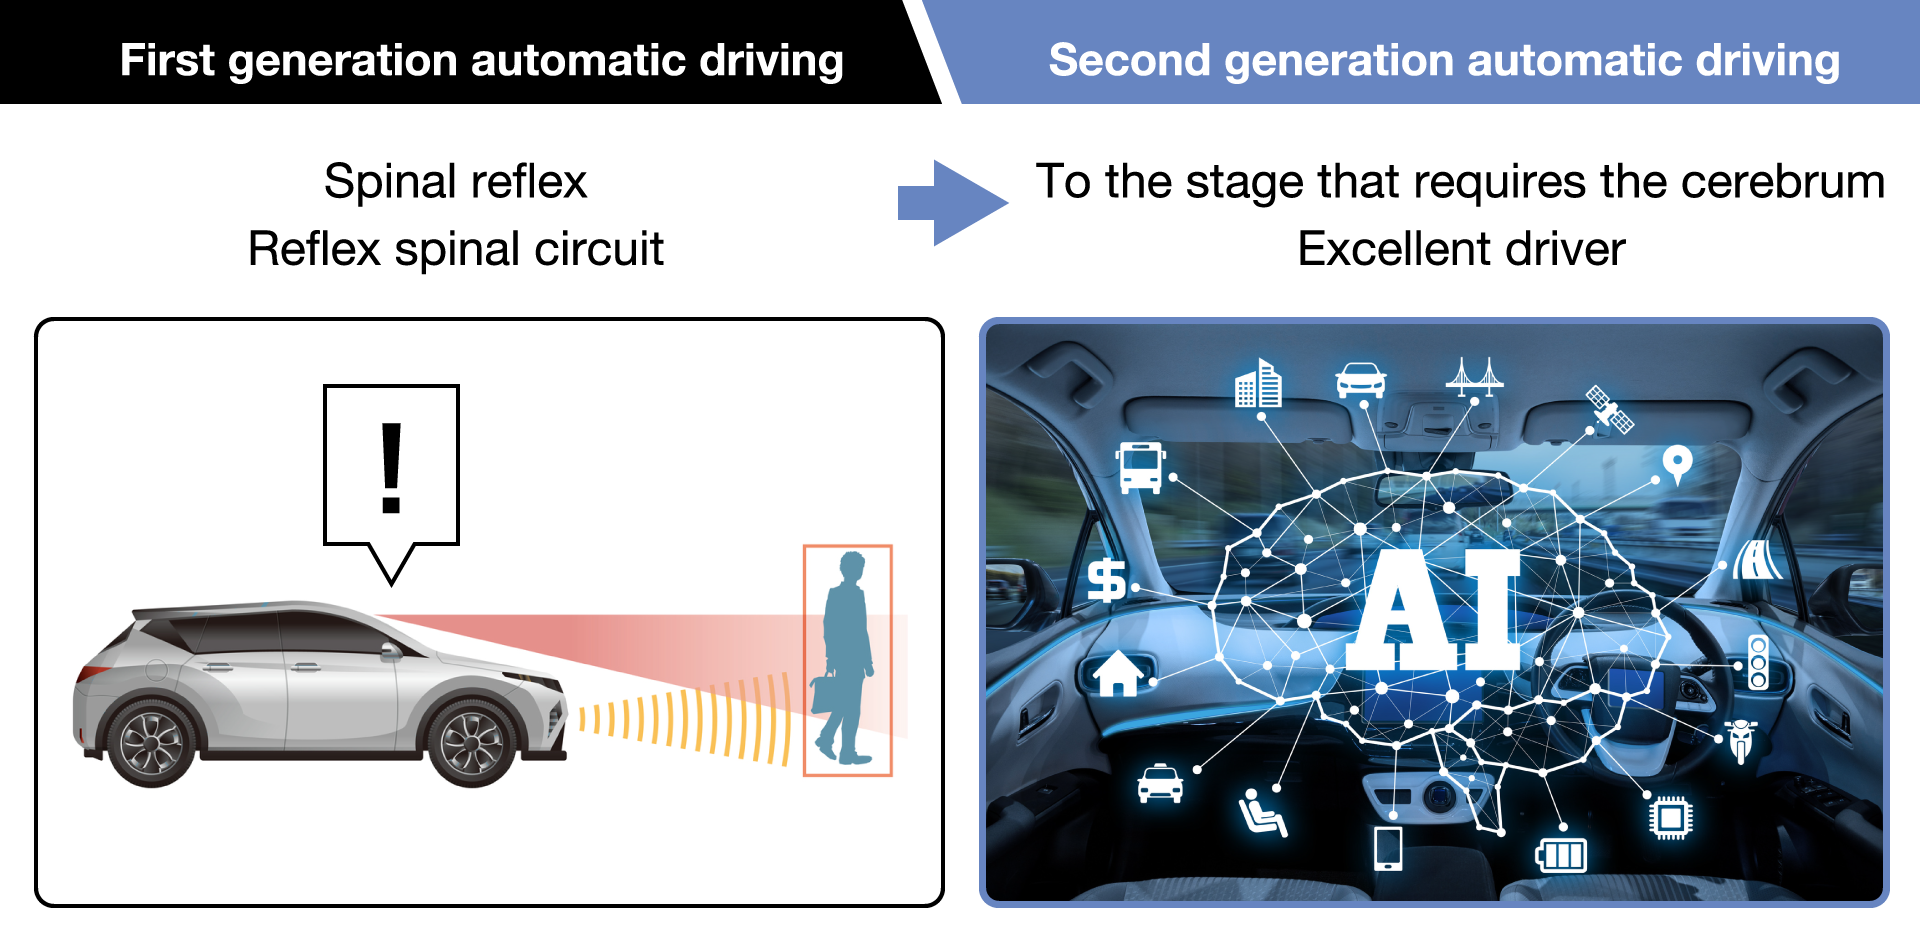 Second generation automatic driving